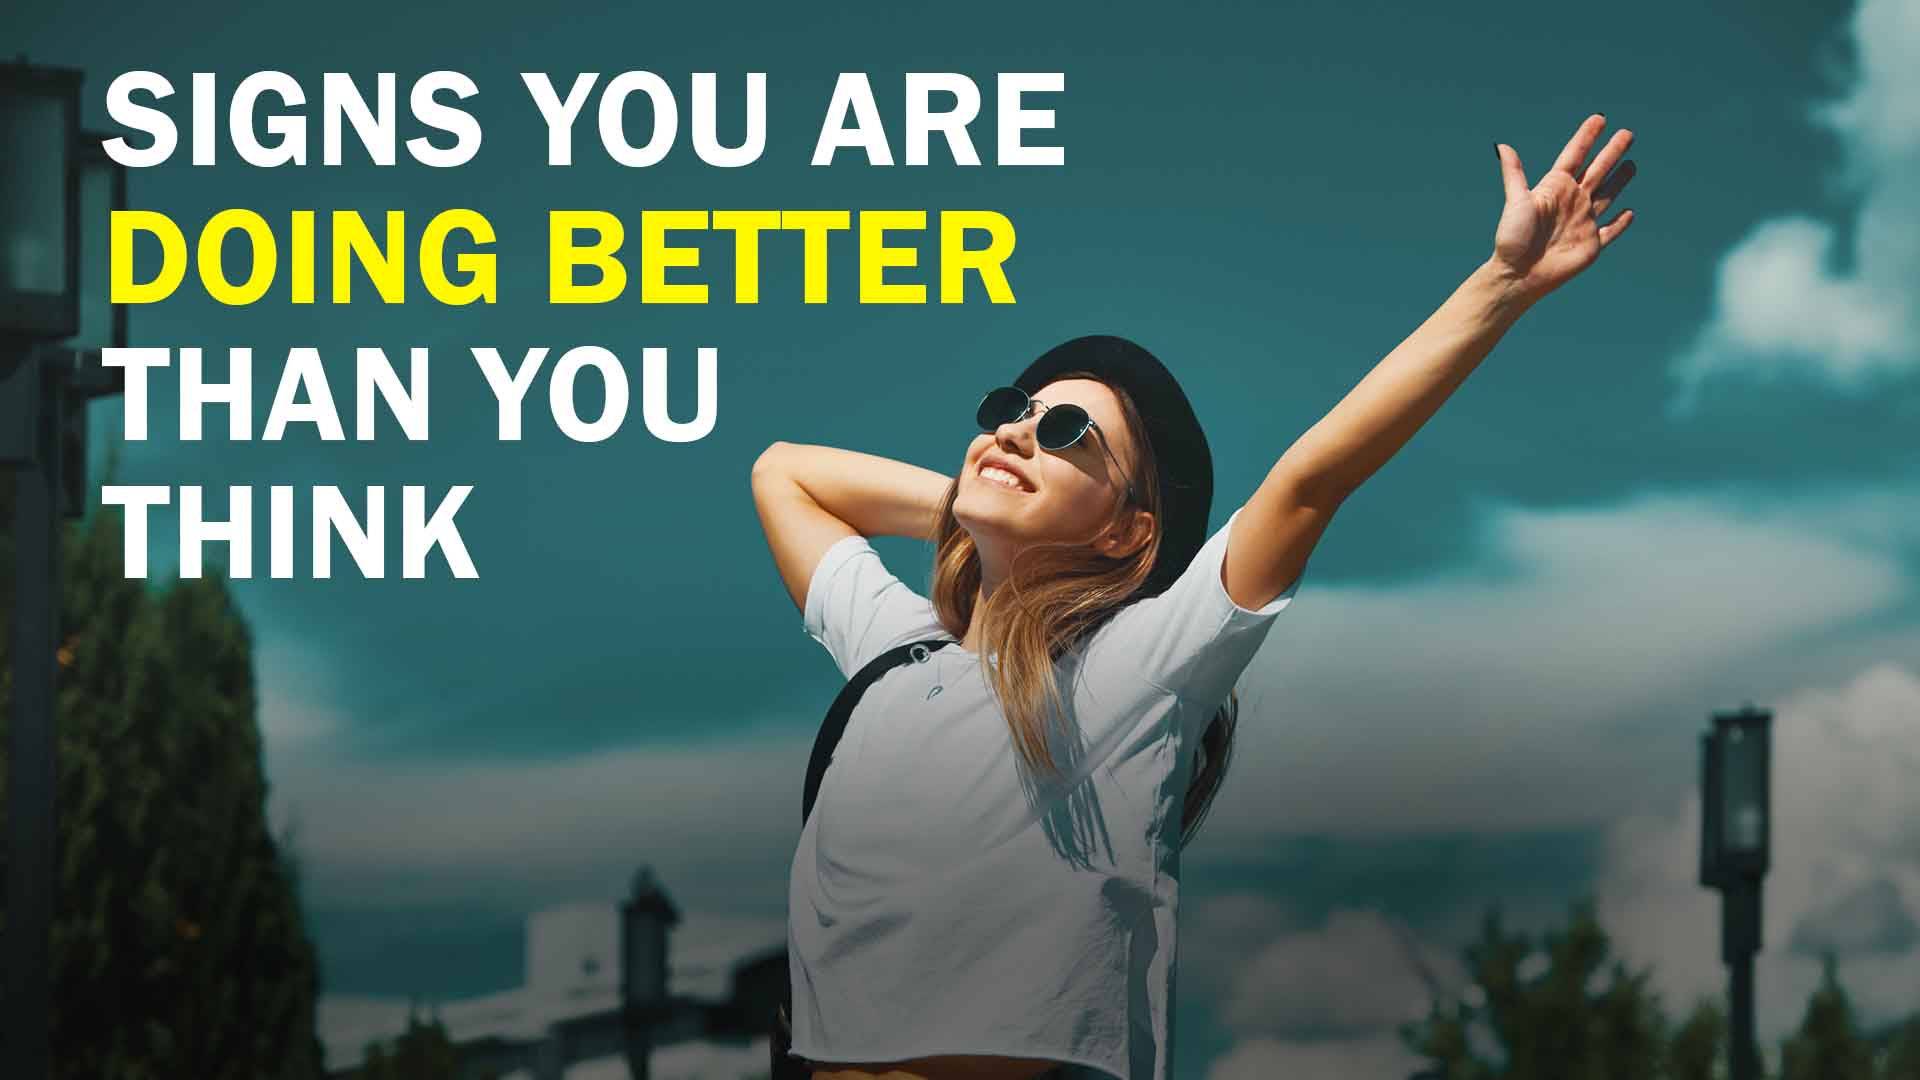 Signs you are doing better than you think